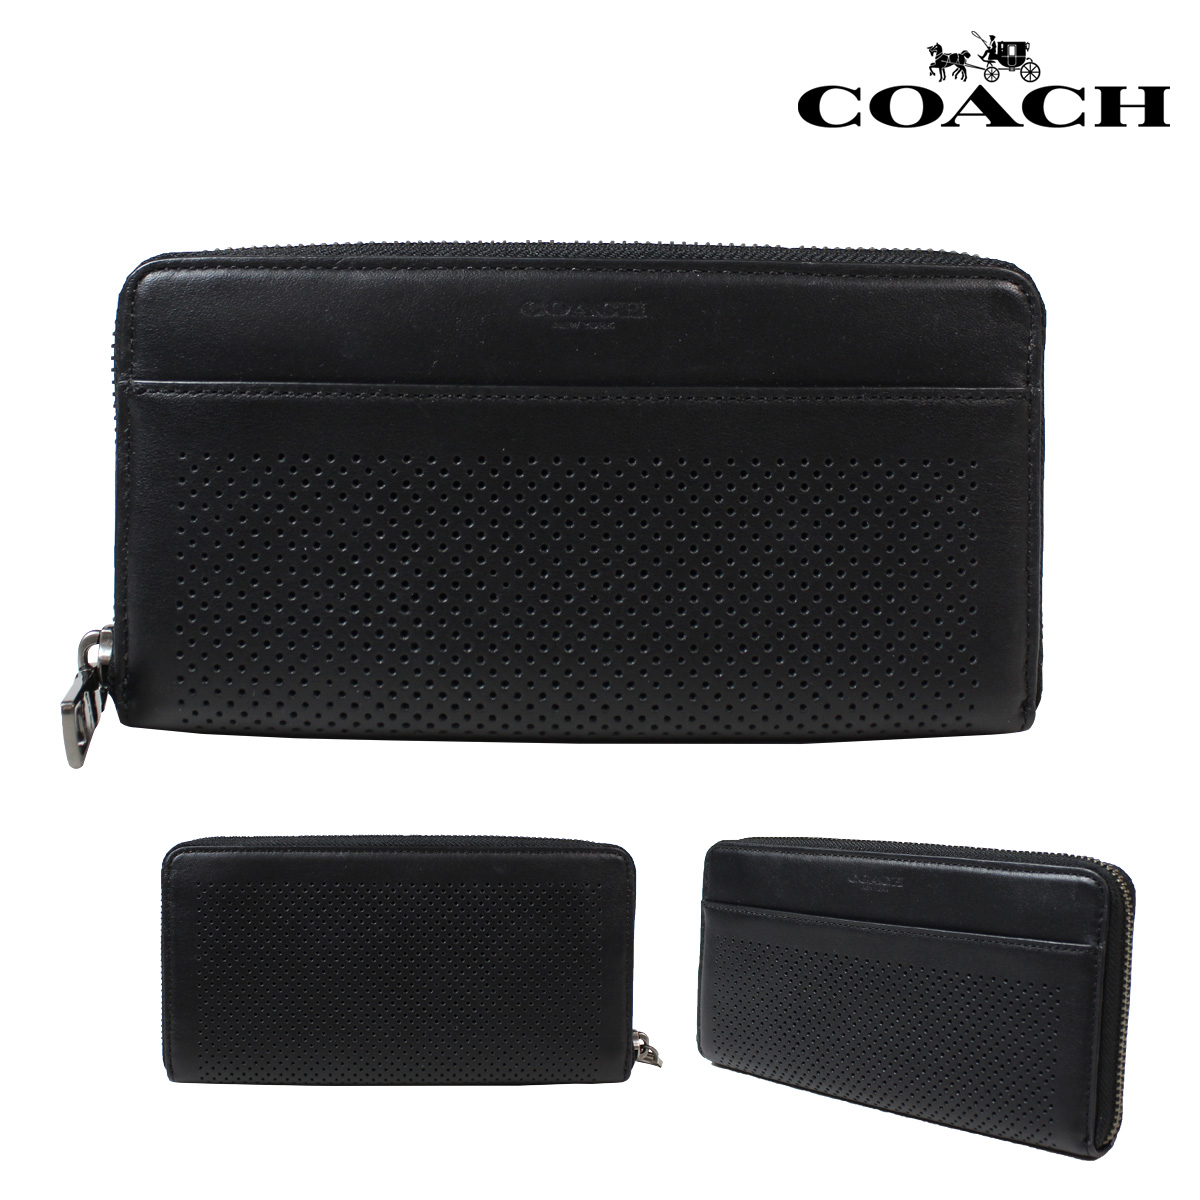 Whats Up Sports Sold Out Coach Coach Men Wallet Long Wallet